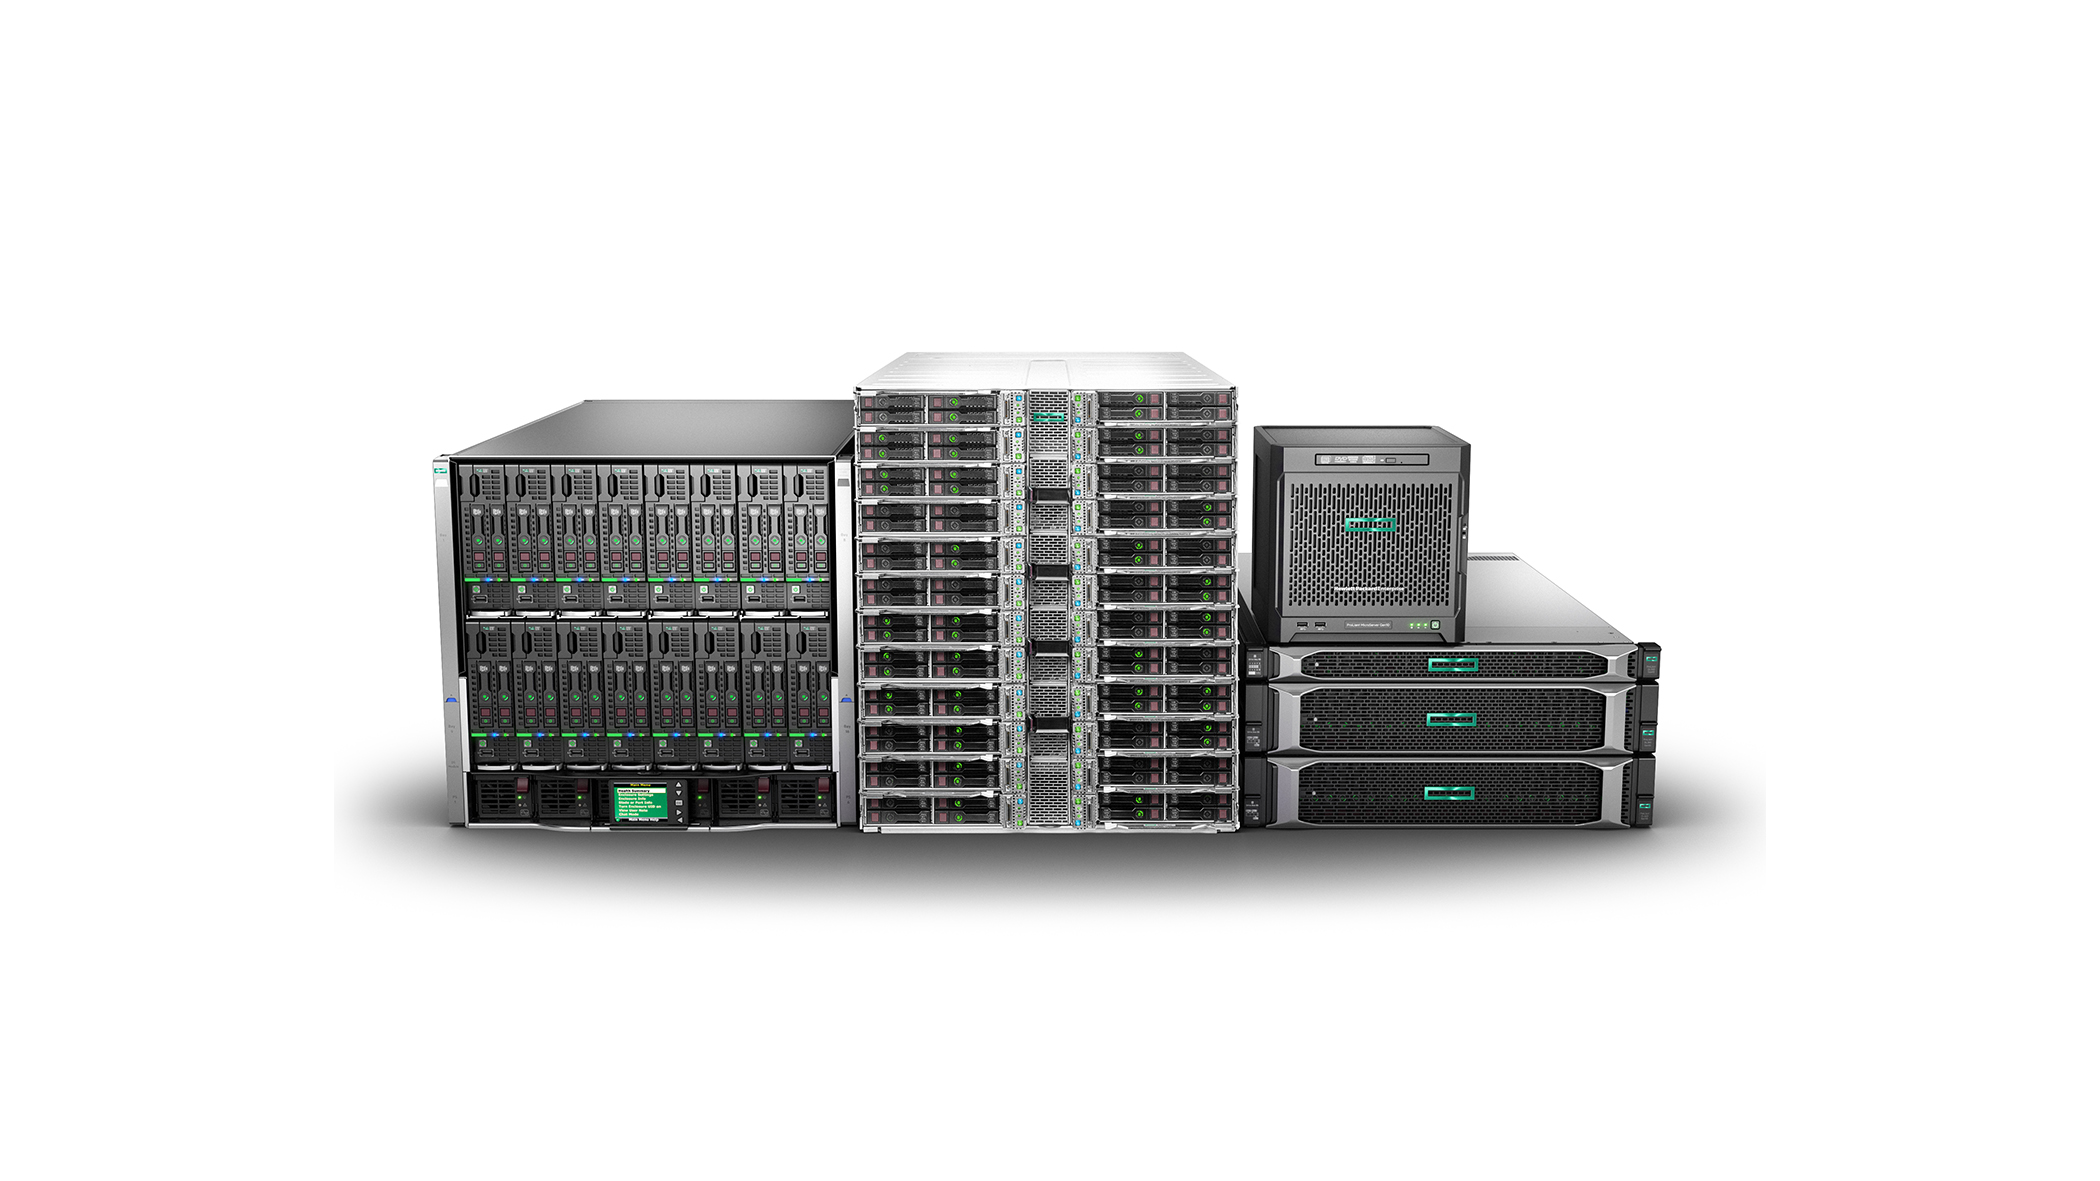 Hybrid Cloud Hpe Ships All In One Azure Stack On Proliant